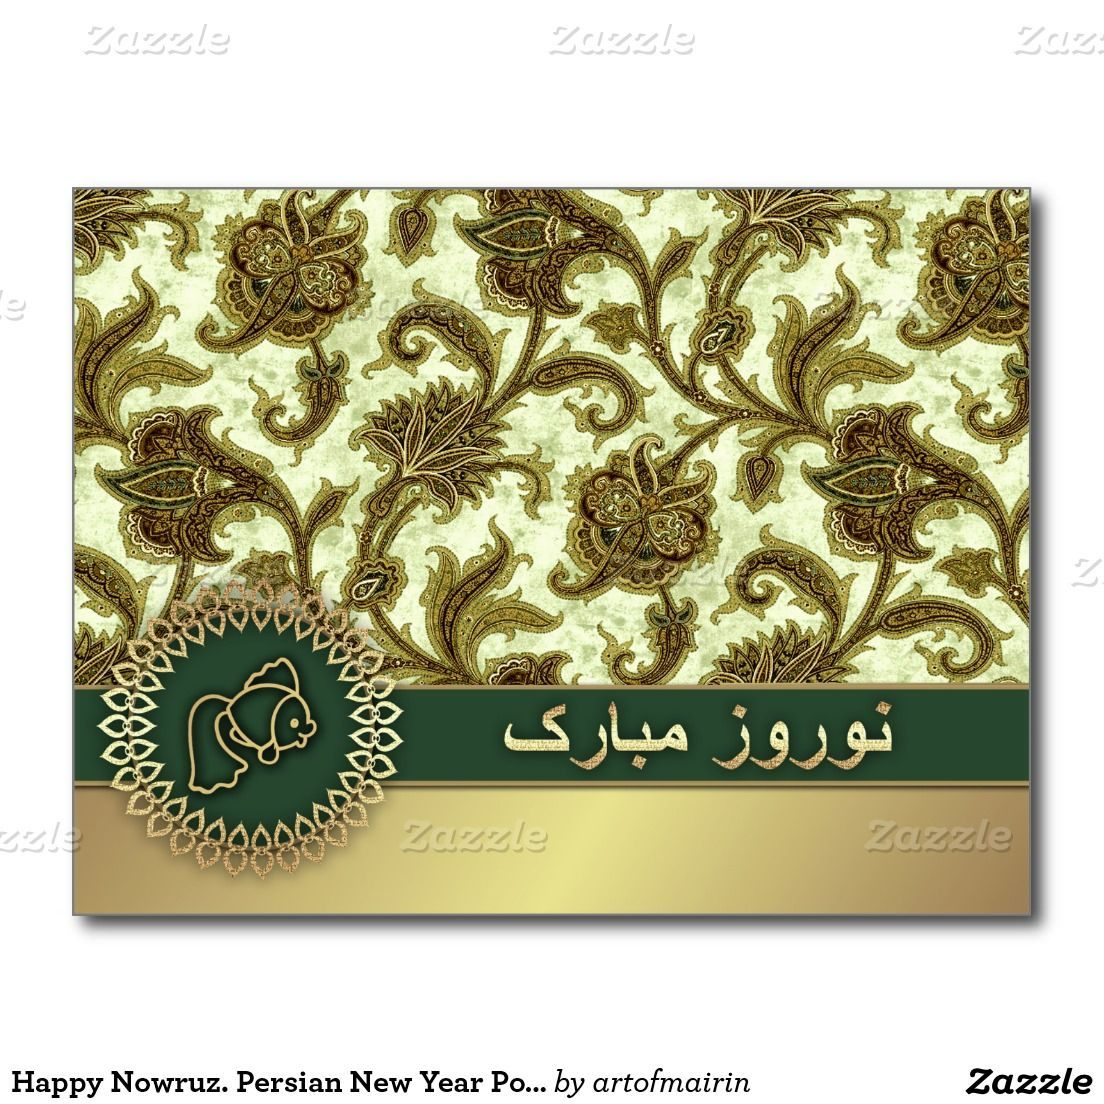 wruz mubarak muslim spring festival norooz shop nowruz mubarak persian new year customizable cards created by artofmairin kristyandbryce Gallery